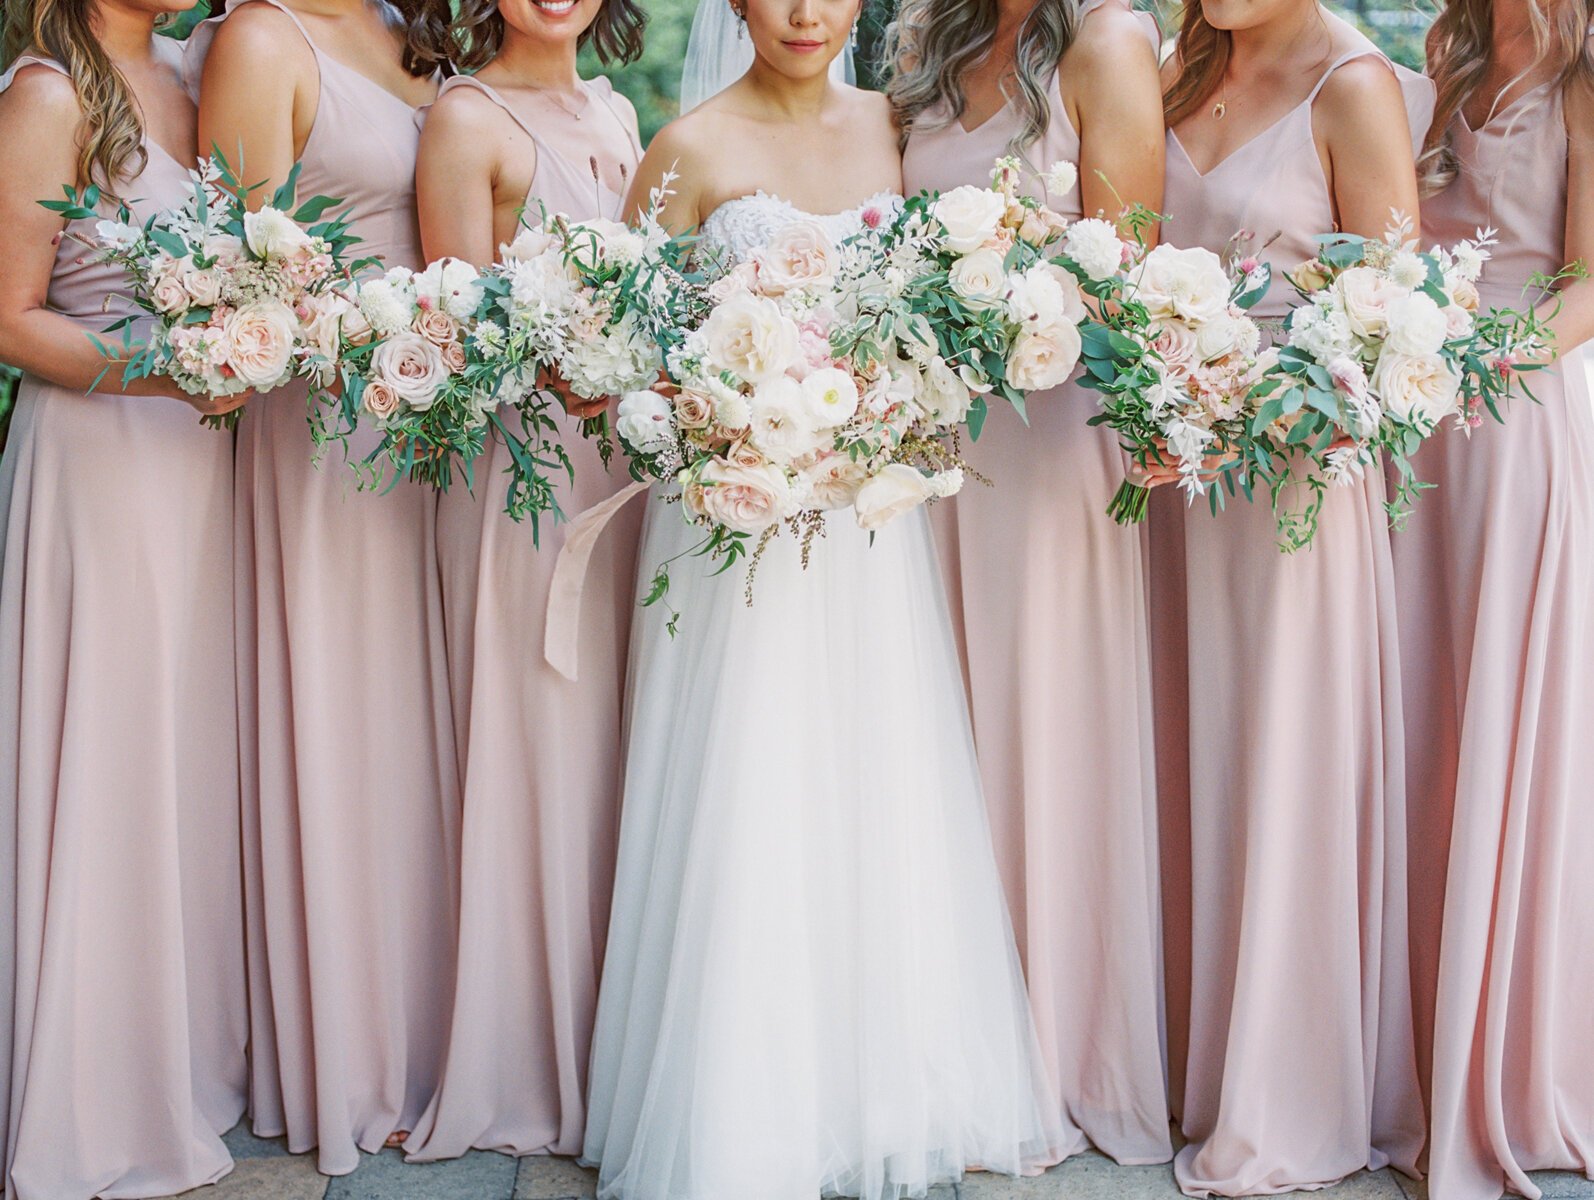 Bridesmaids in blush and dusty rose dresses